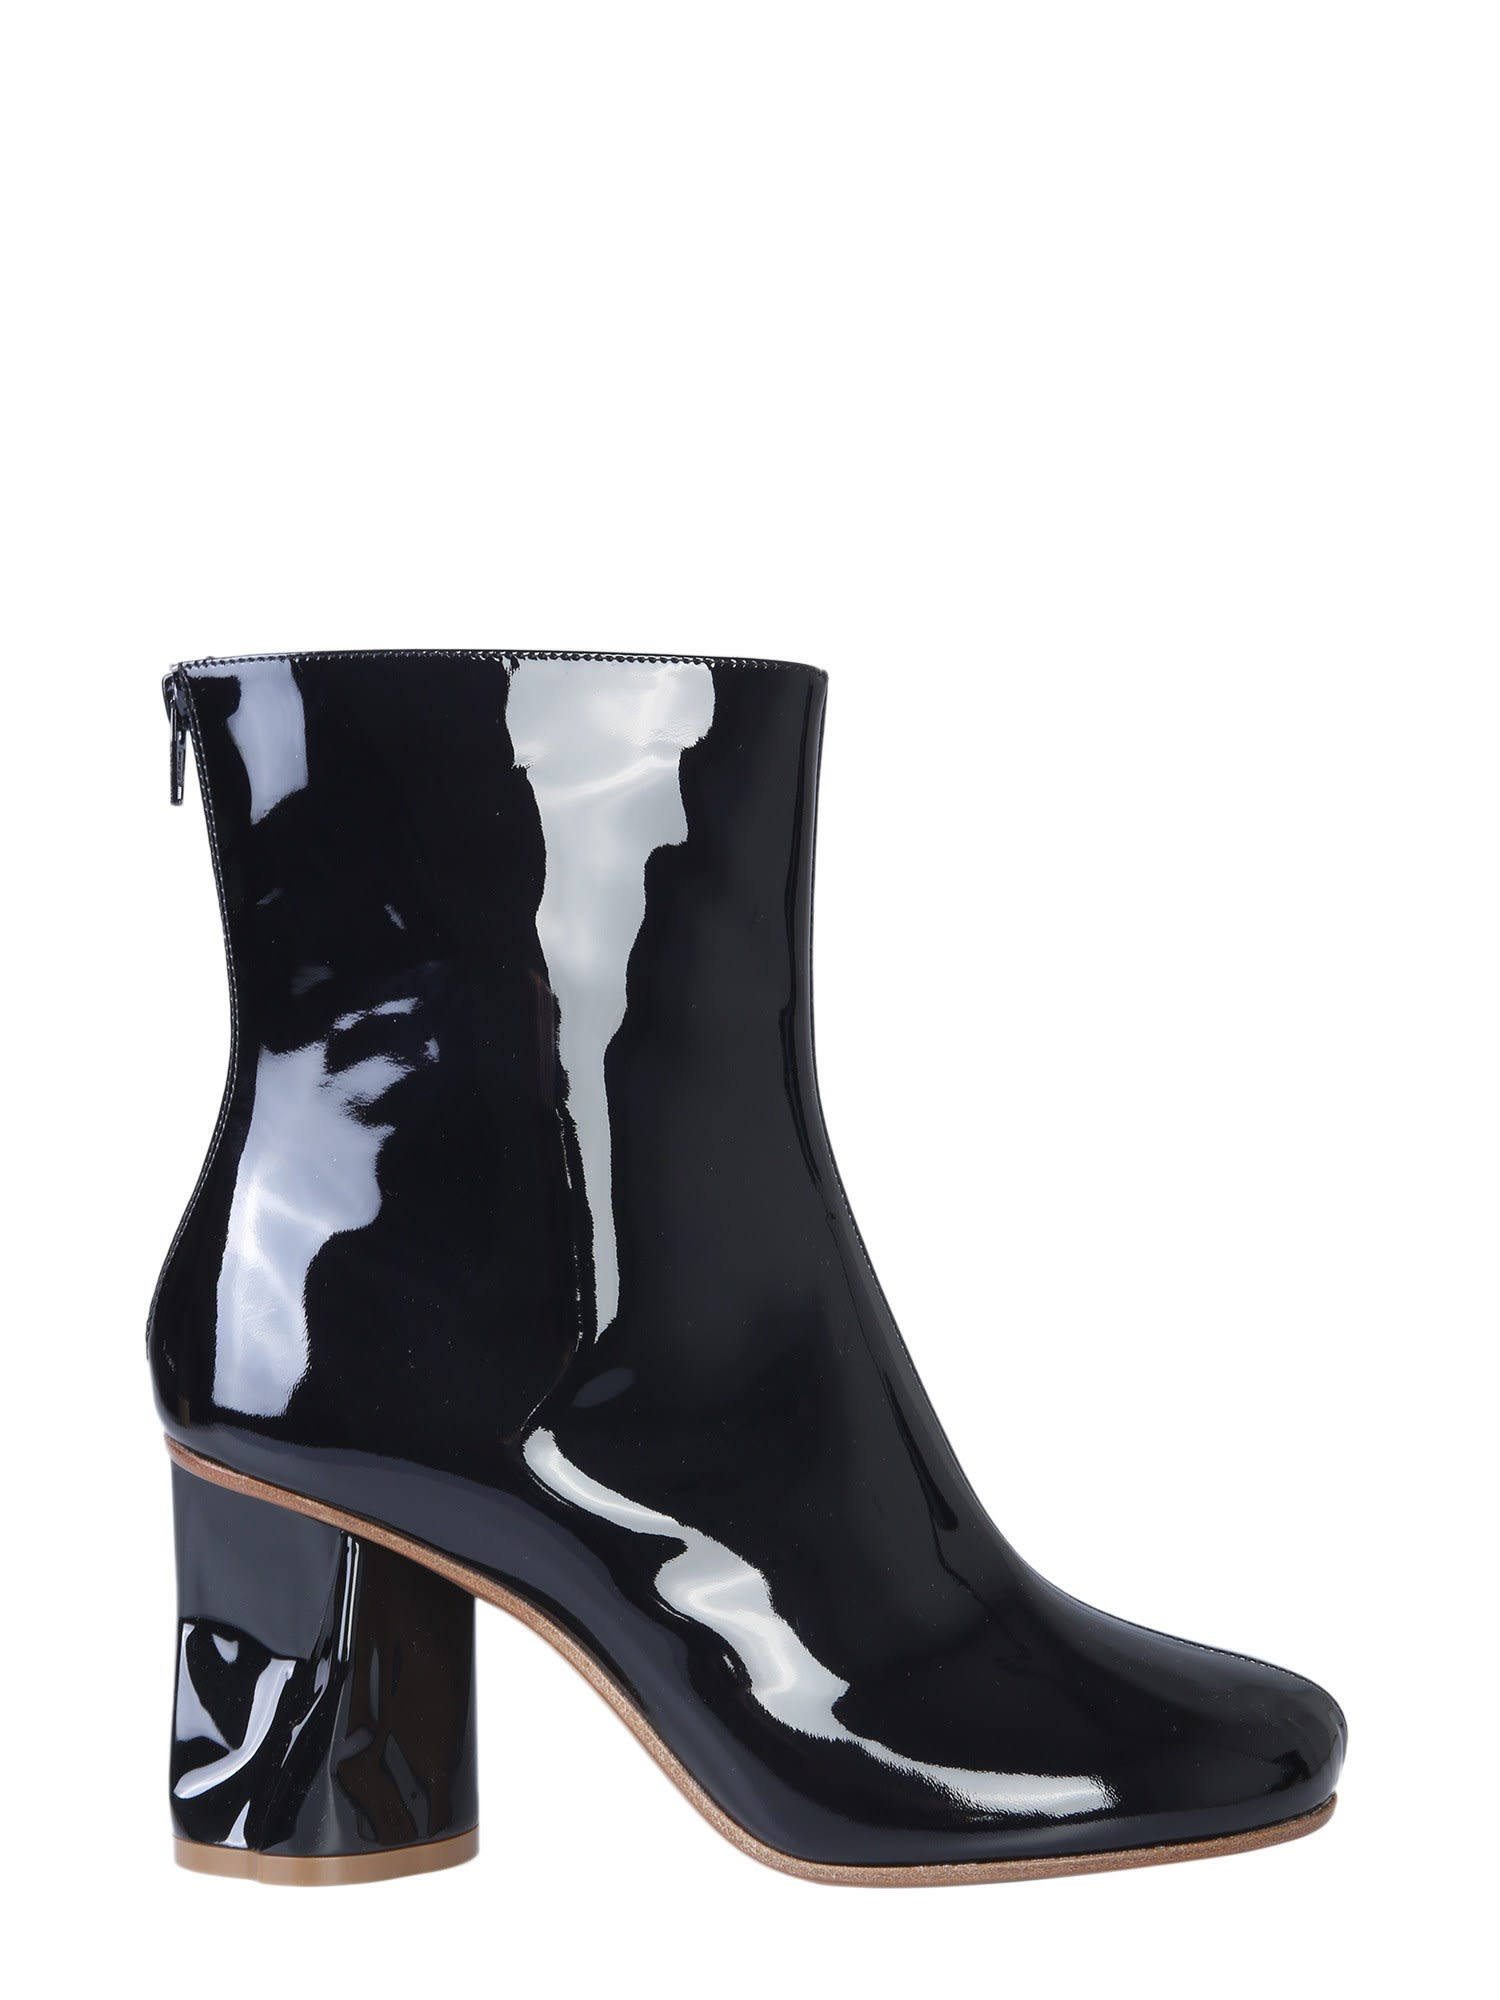 Buy Maison Margiela Ankle Boots With Crushed Heel online, shop Maison Margiela shoes with free shipping